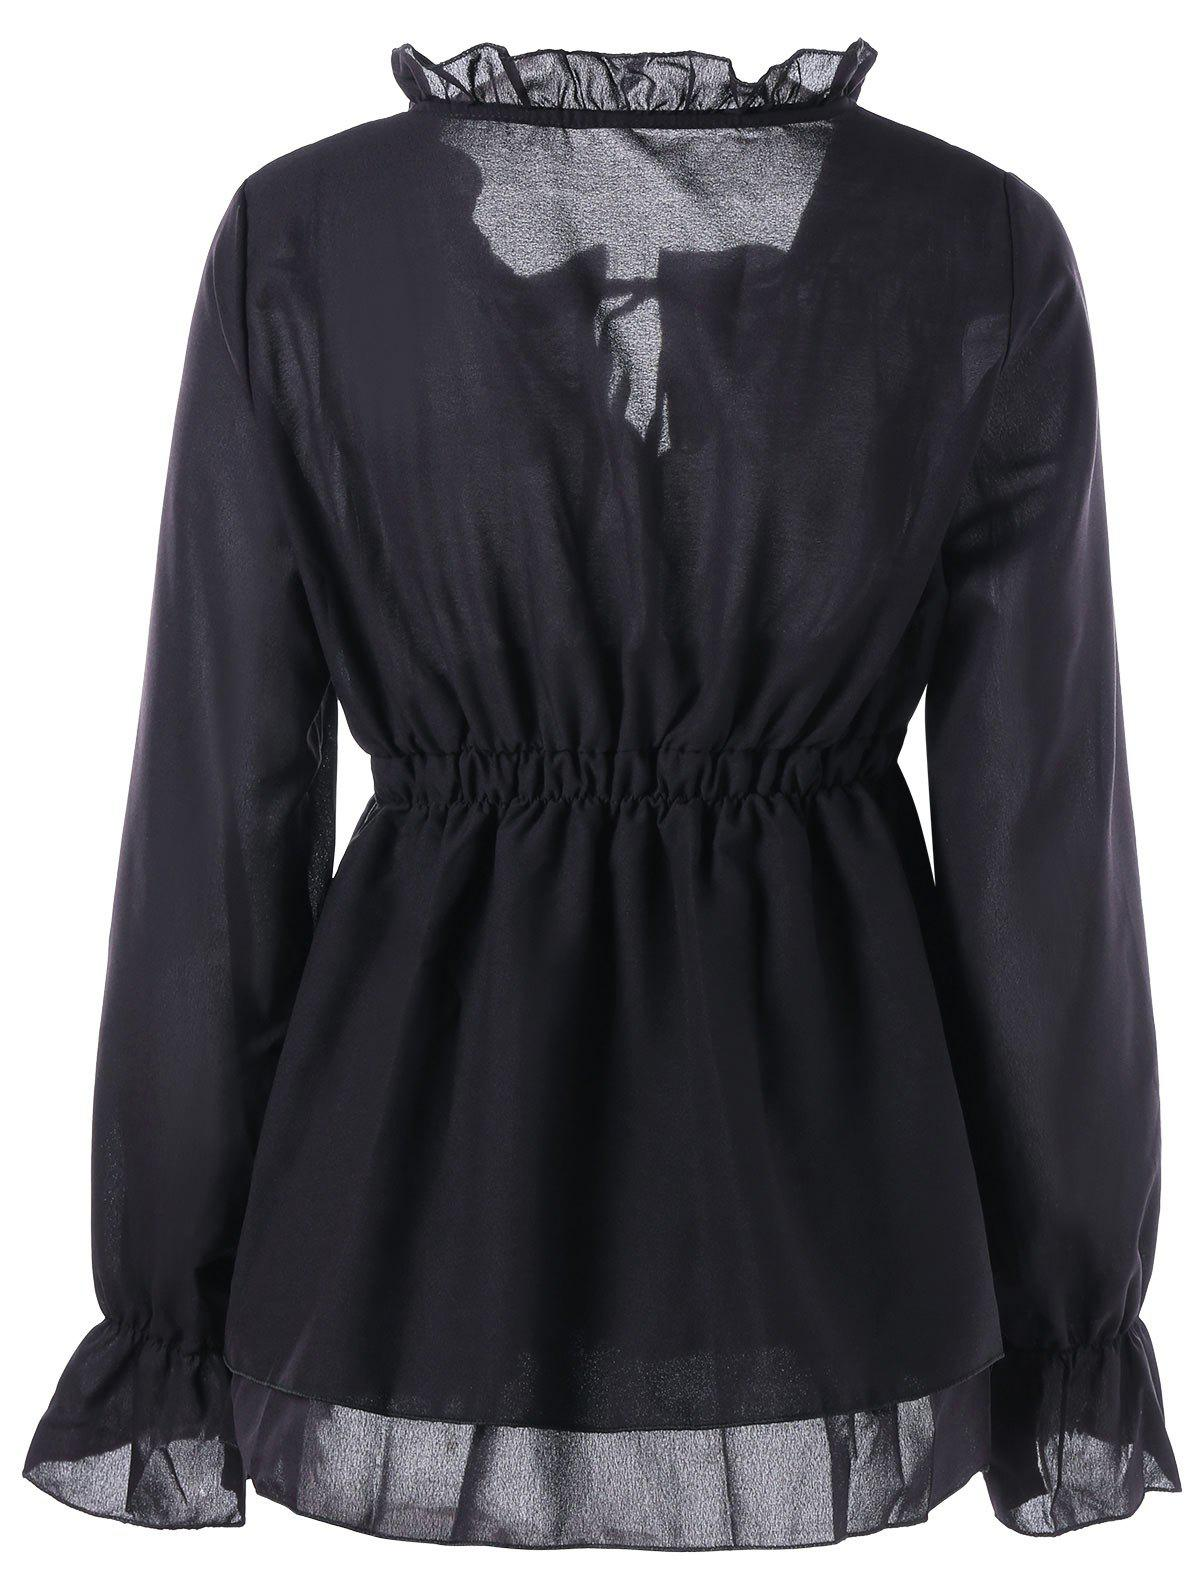 Ruffle Collar Peplum Blouse - BLACK L